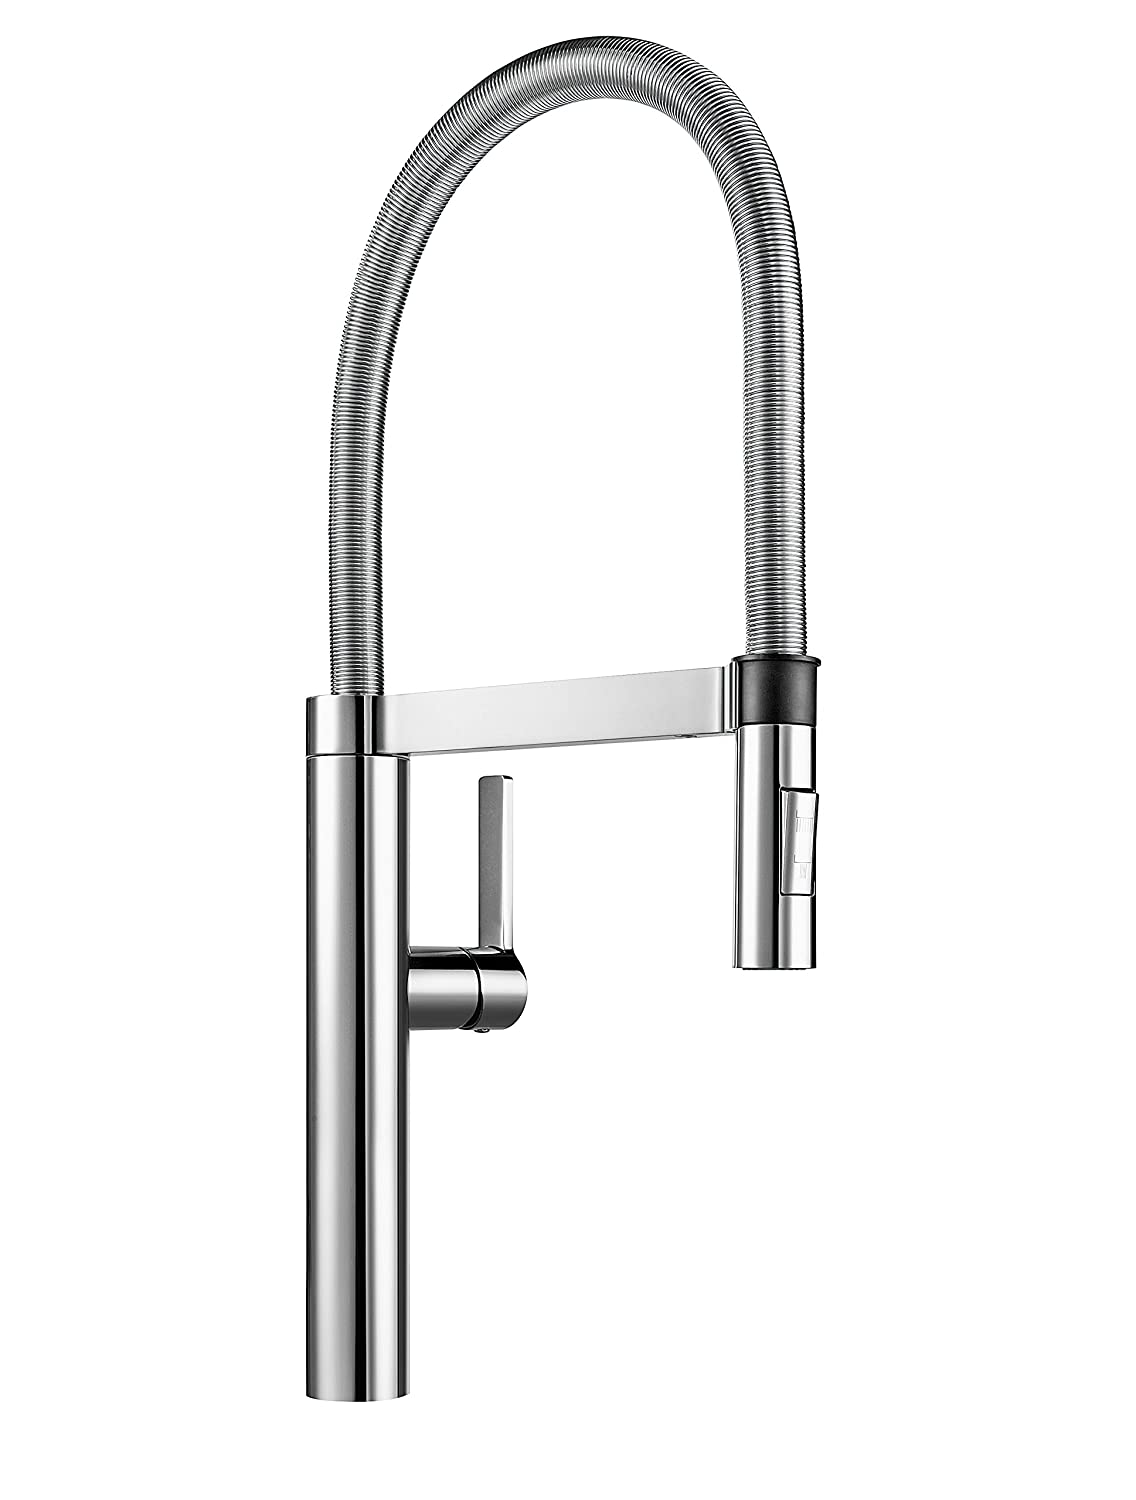 Blanco Culina Kitchen Mixer Tap, Silver, 517597: Amazon.co.uk: DIY U0026 Tools